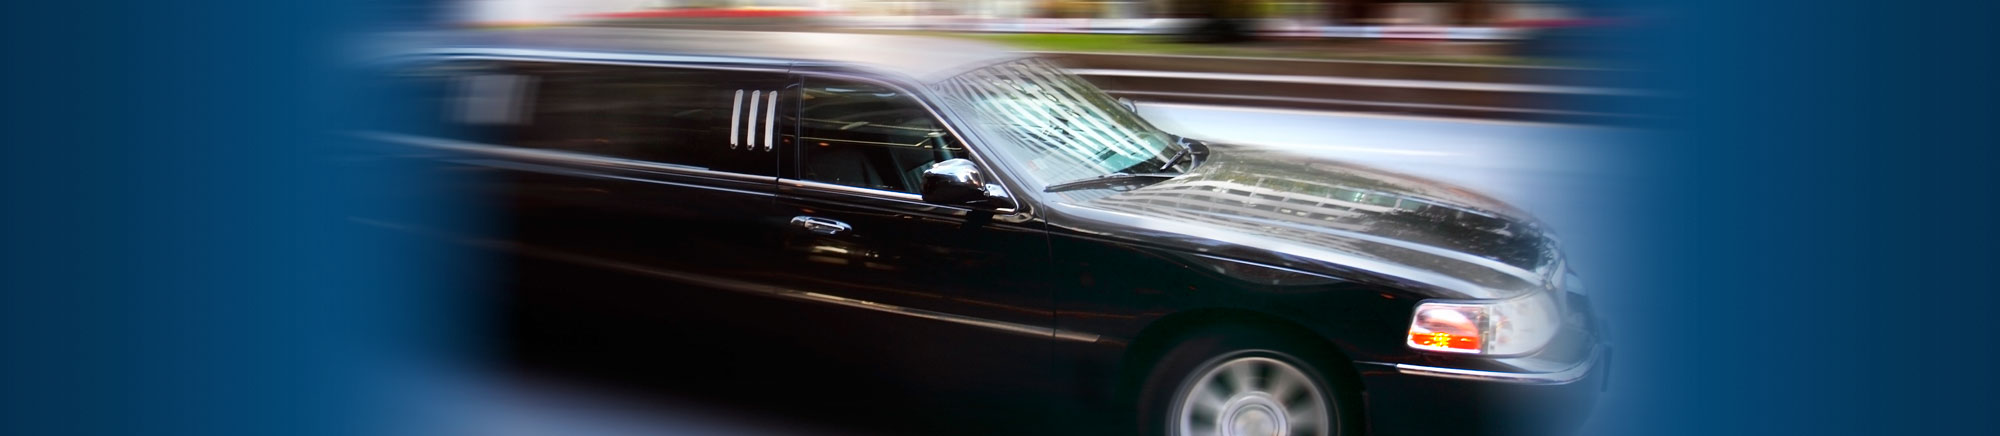 Arrive in style in your Pacific Vancouver Limousine